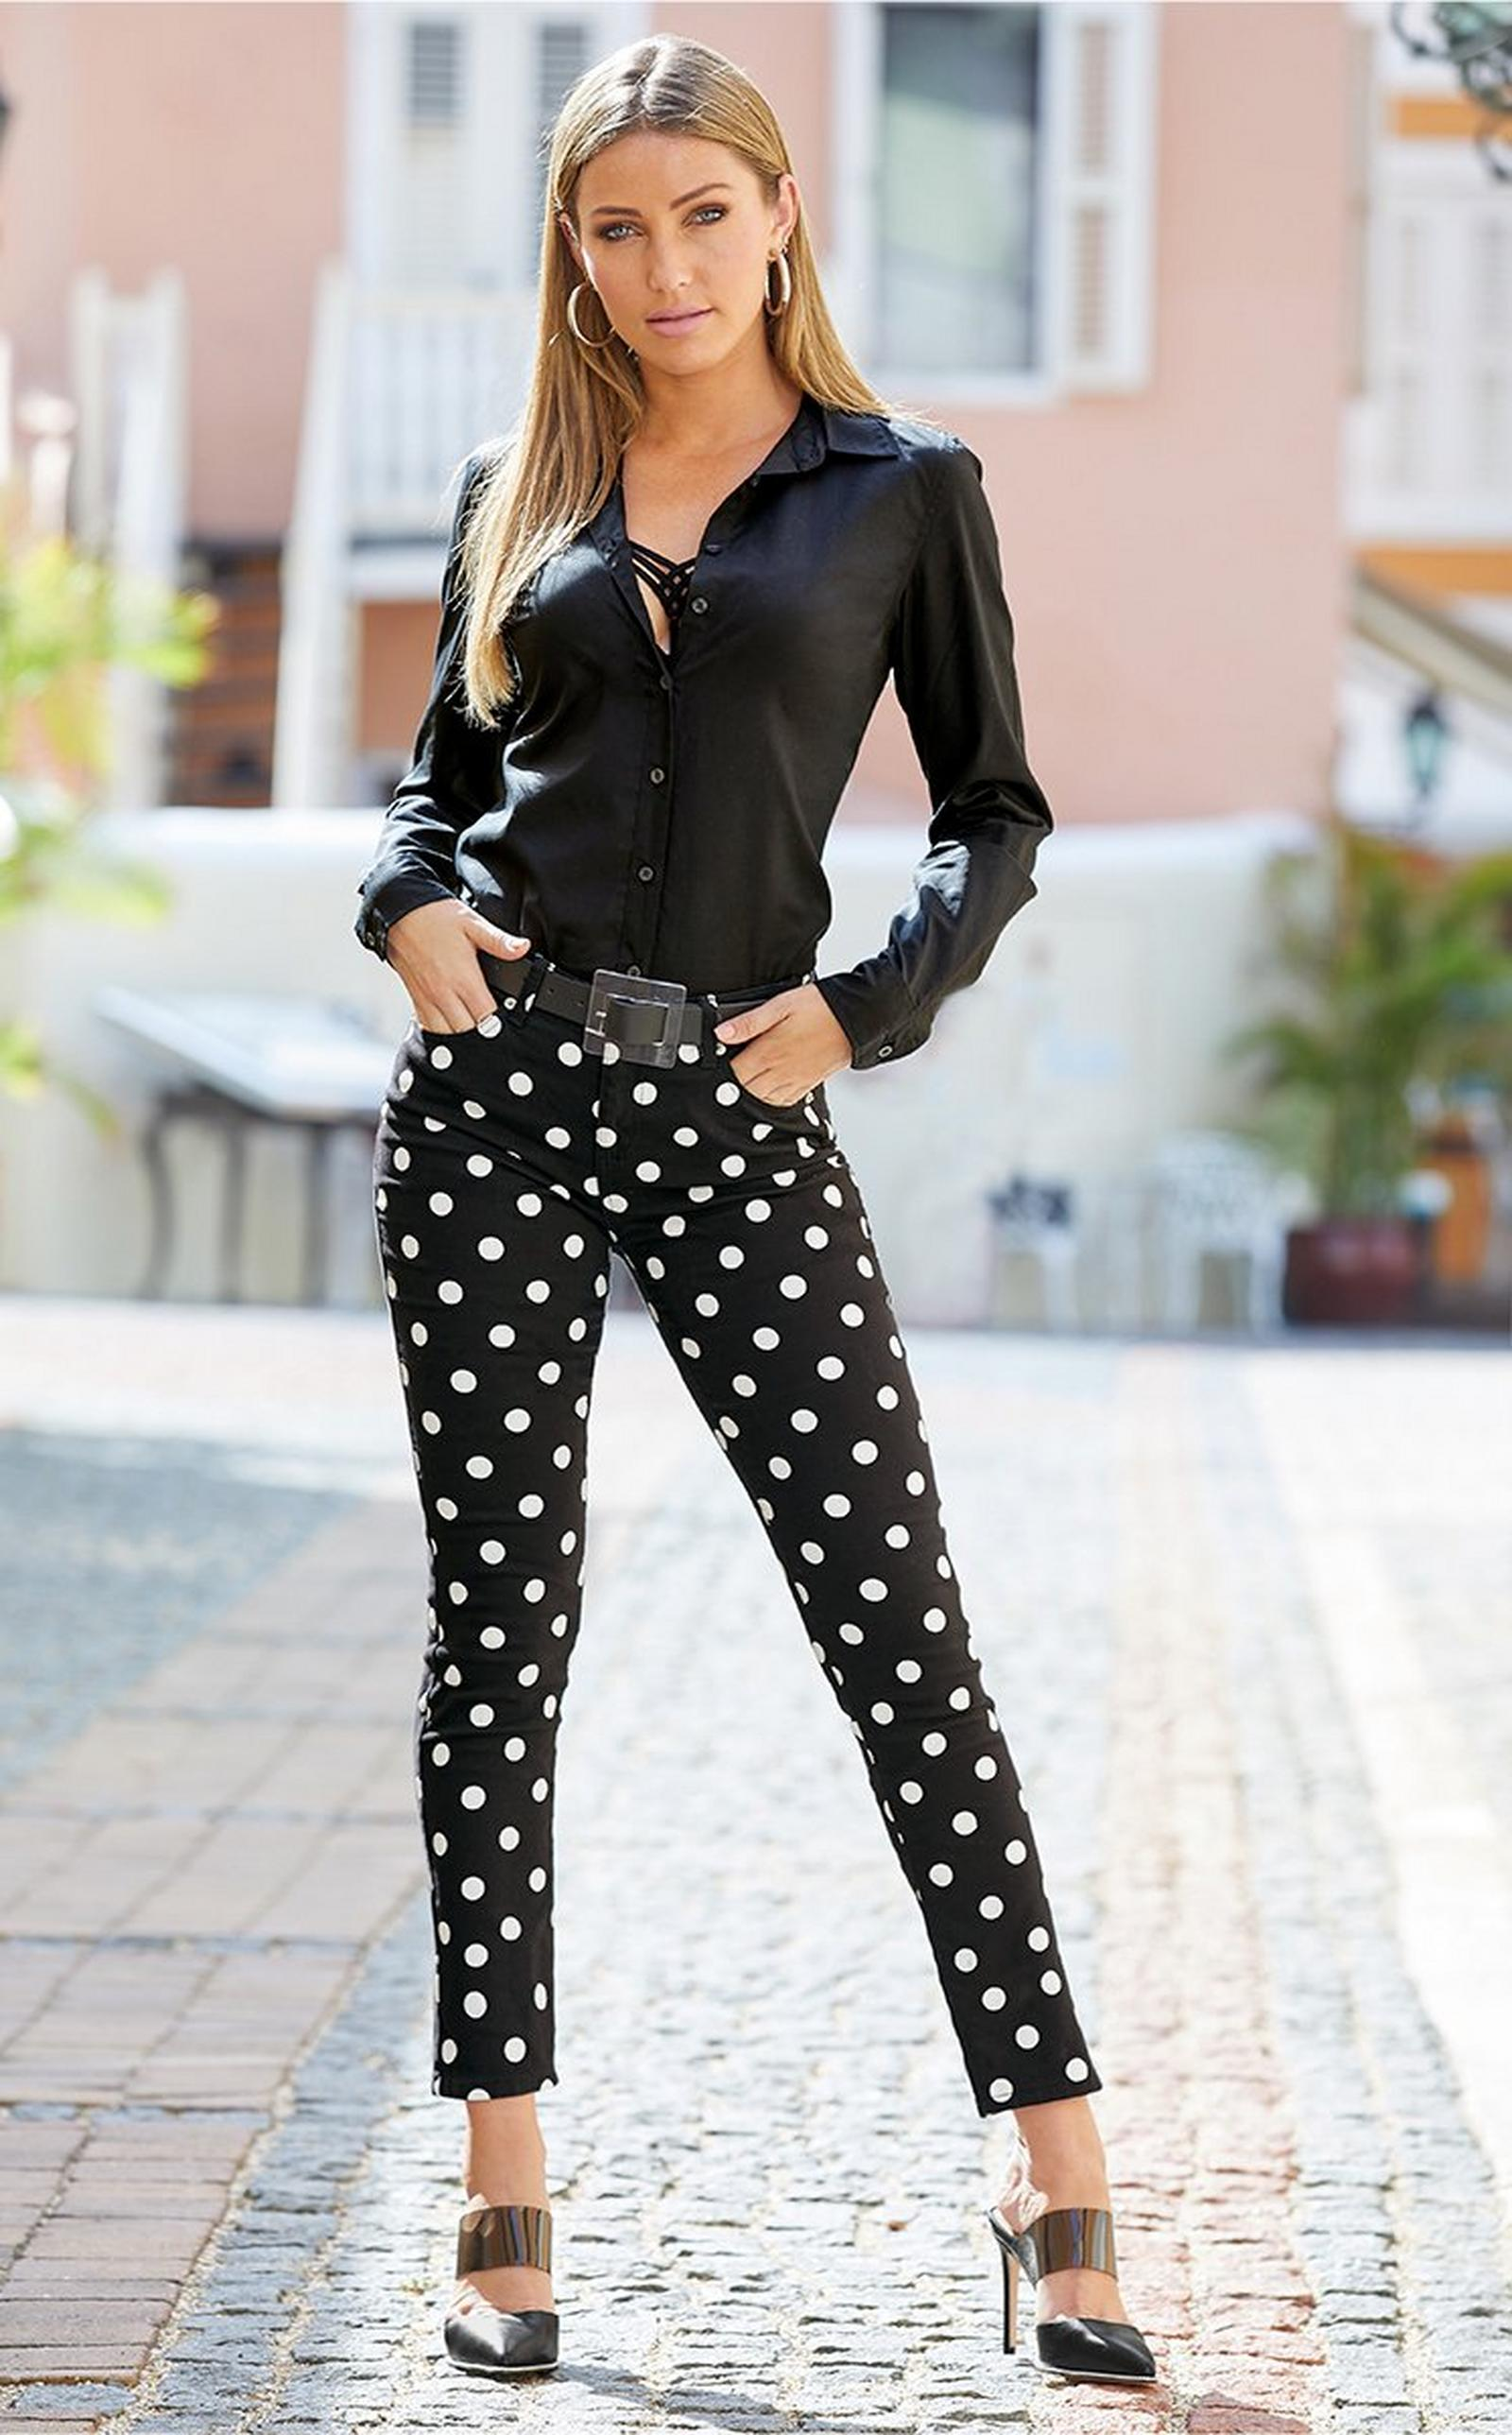 model wearing a black button-up top, strappy bra, clear belt, black and white polka dot jeans, and black vinyl heels.